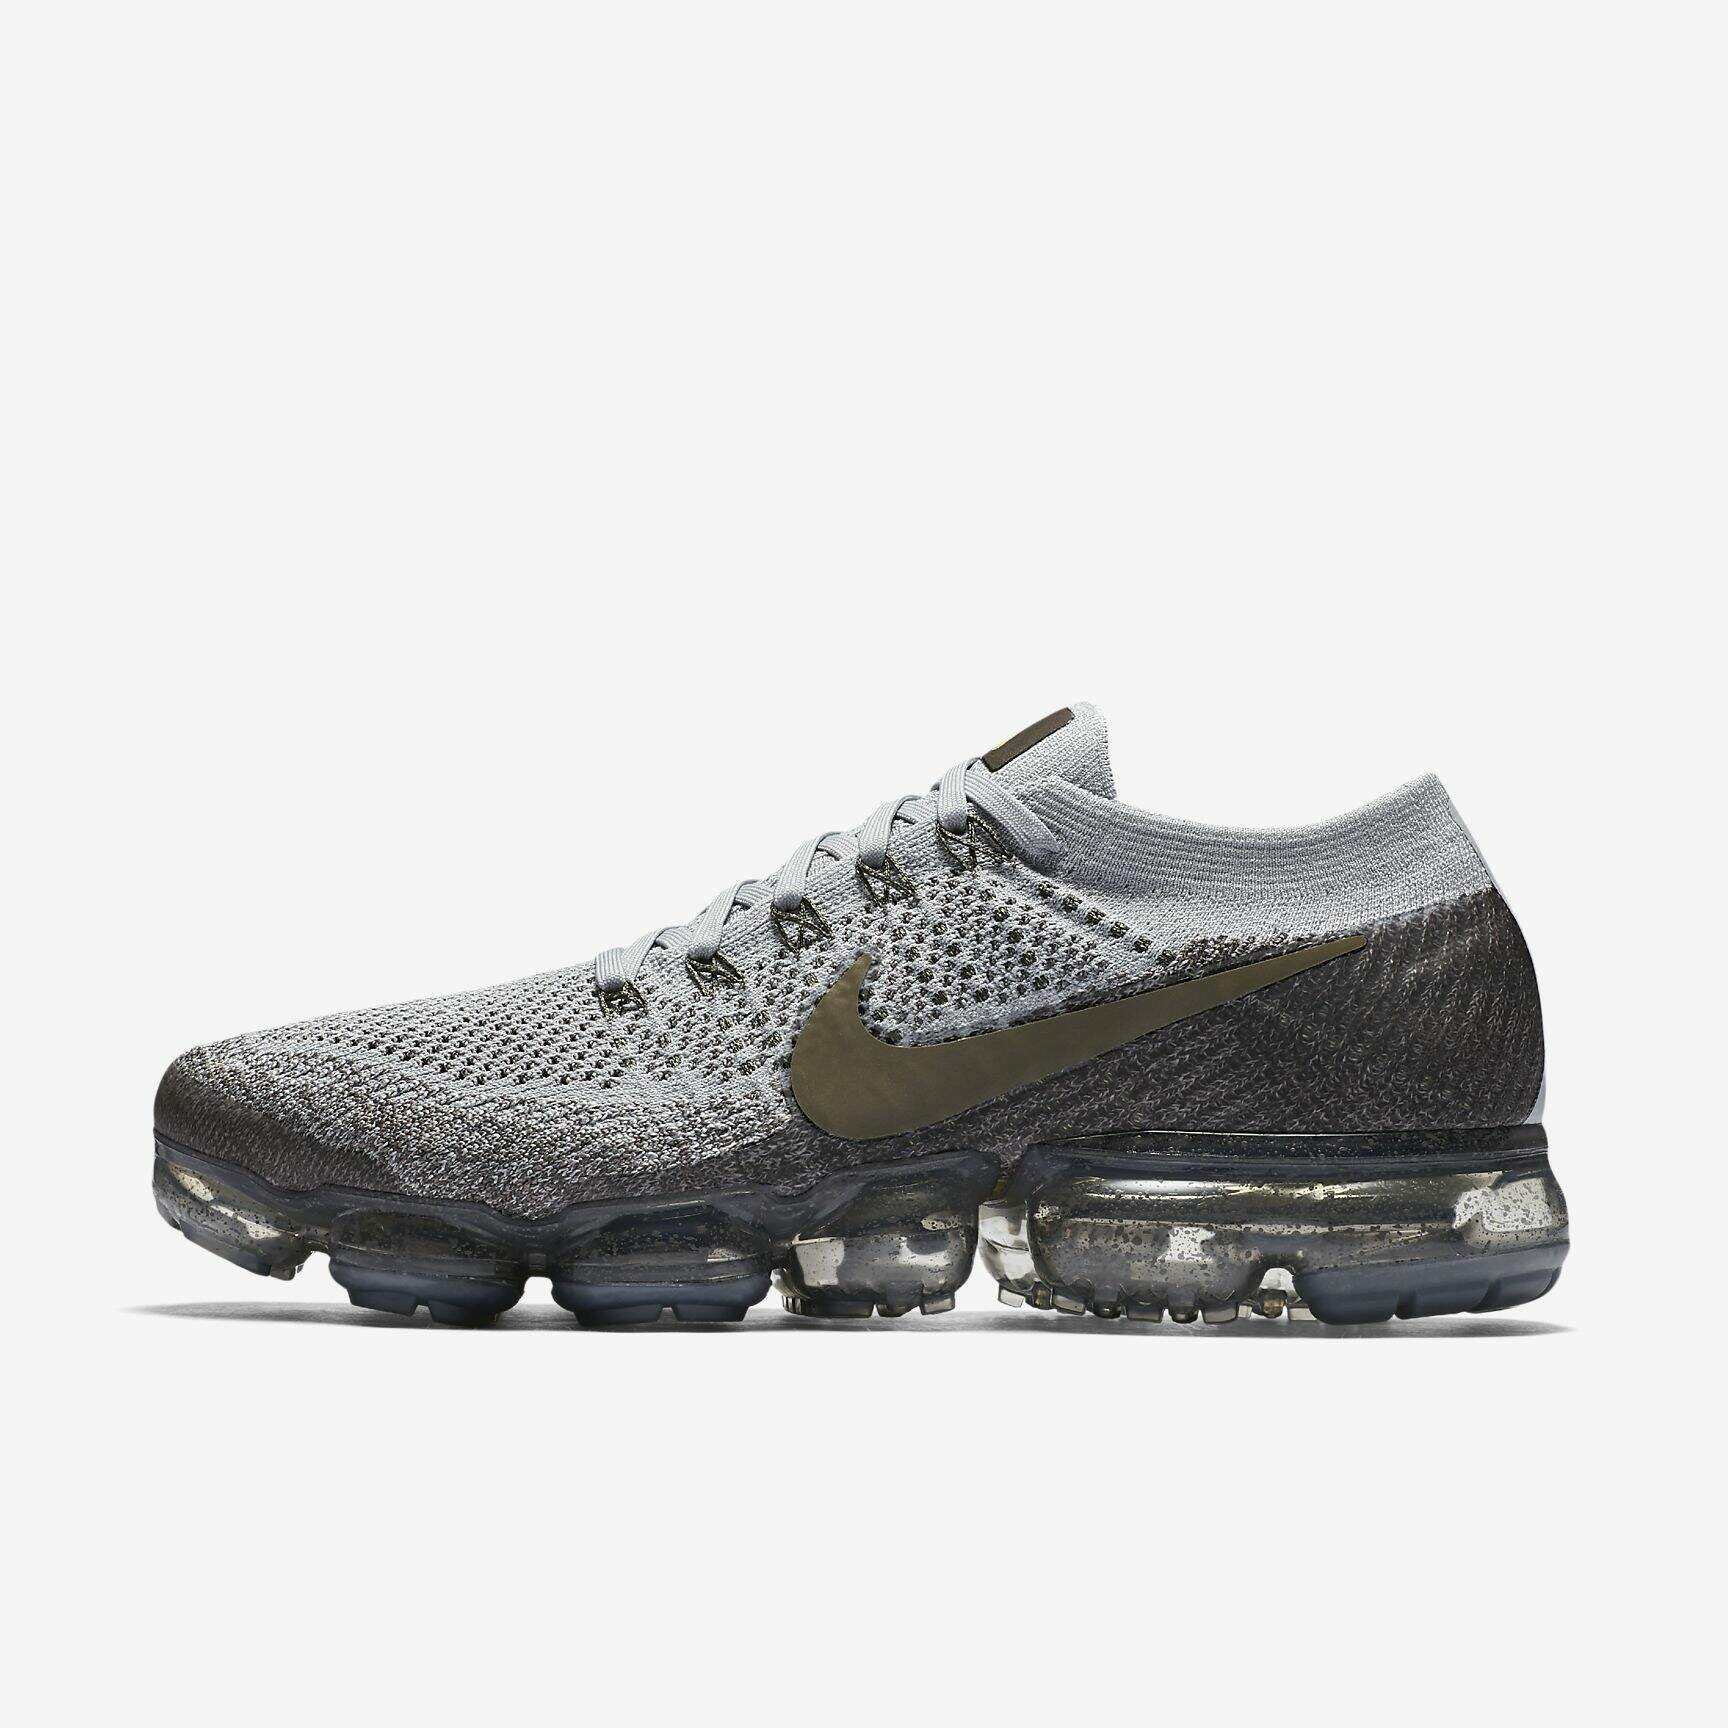 hot sale online 10618 3e653 Air VaporMax Flyknit Midnight Fog / Wolf Grey / Sonic Yellow / Medium Olive  Masculino - CONRADO IMPORTADOS